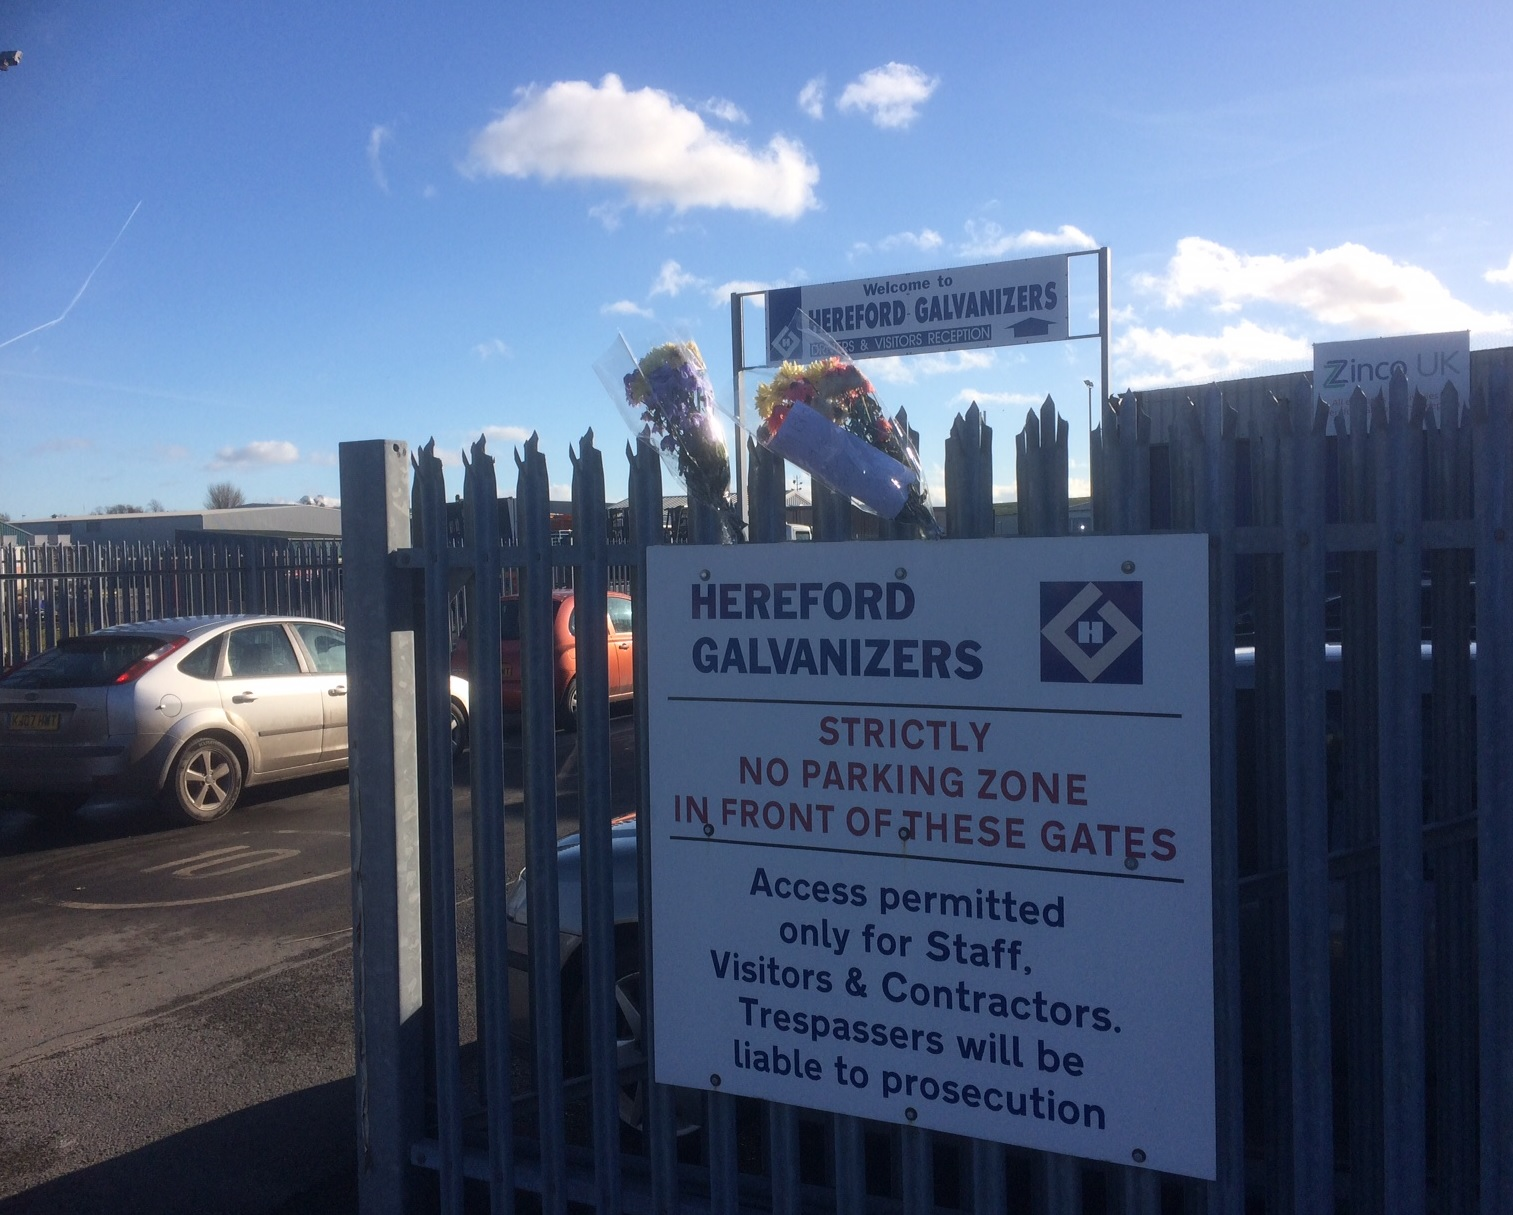 Flowers have been left at the entrance to Hereford Galvanizers. Photo: Ian Morris.